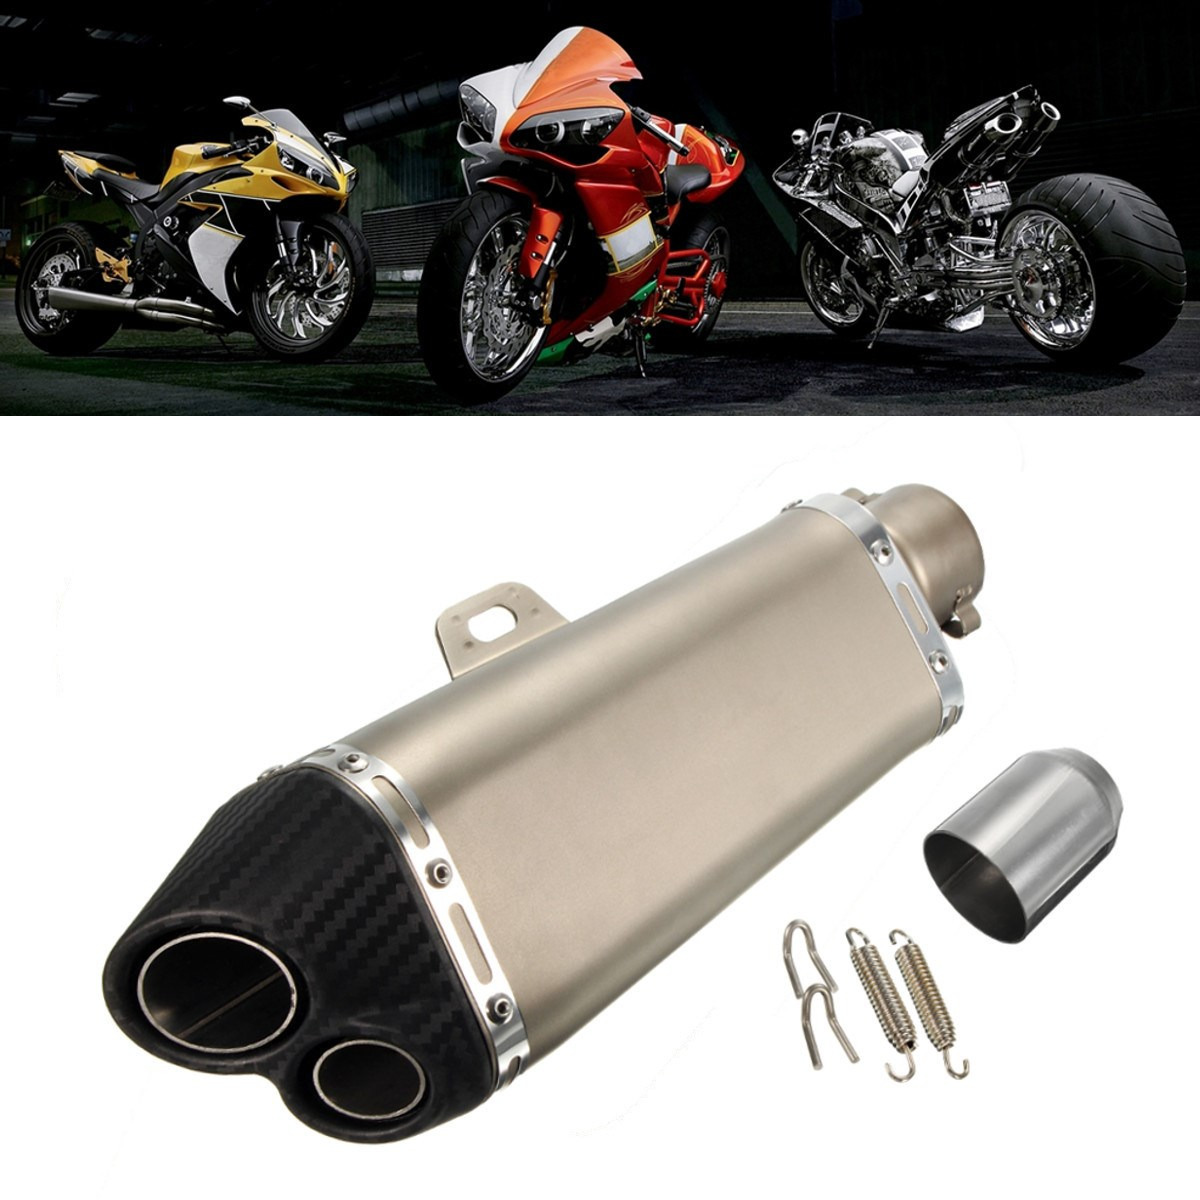 51mm Double Holes Stainless Steel Tube Carbon Fiber Plastic Motorcycle Exhaust Pipe Muffler motorcycle performance exhaust pipe cnc carbon fiber oval tube large displacement car brothers exhaust pipe id 51mm